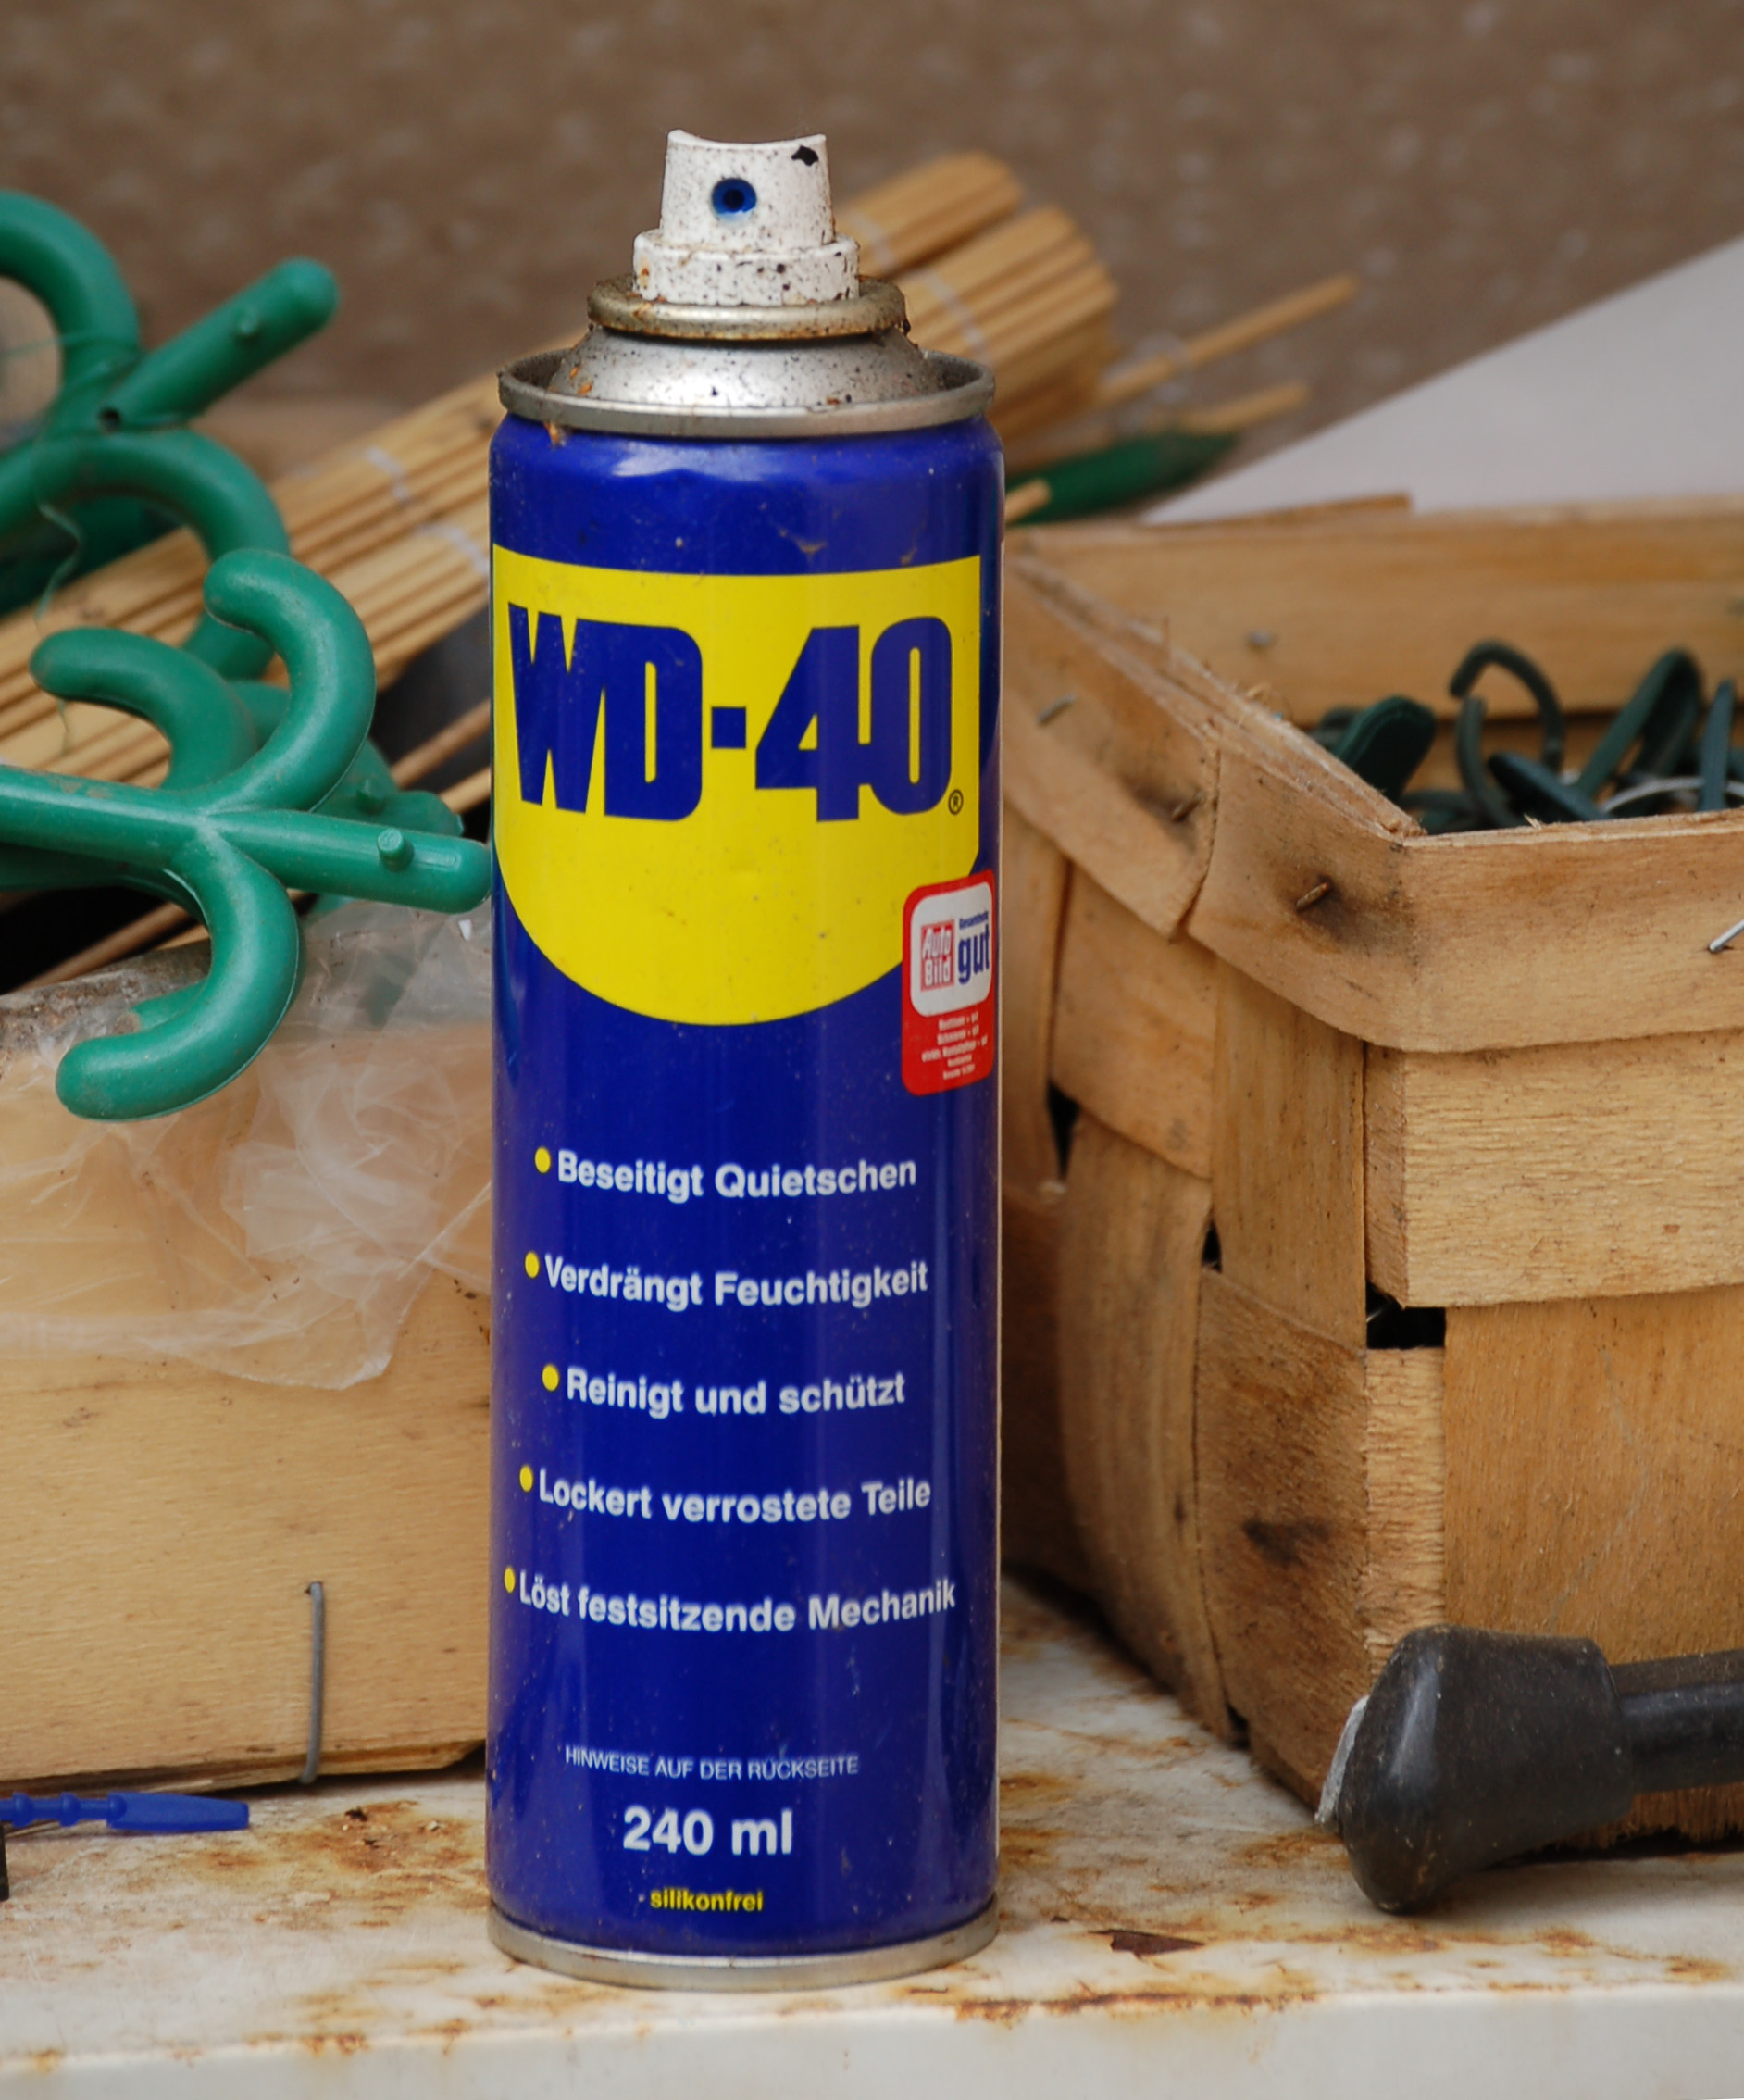 VD-40 - what is it? WD-40 Universal aerosol grease: characteristics, application, manufacturer, reviews 19